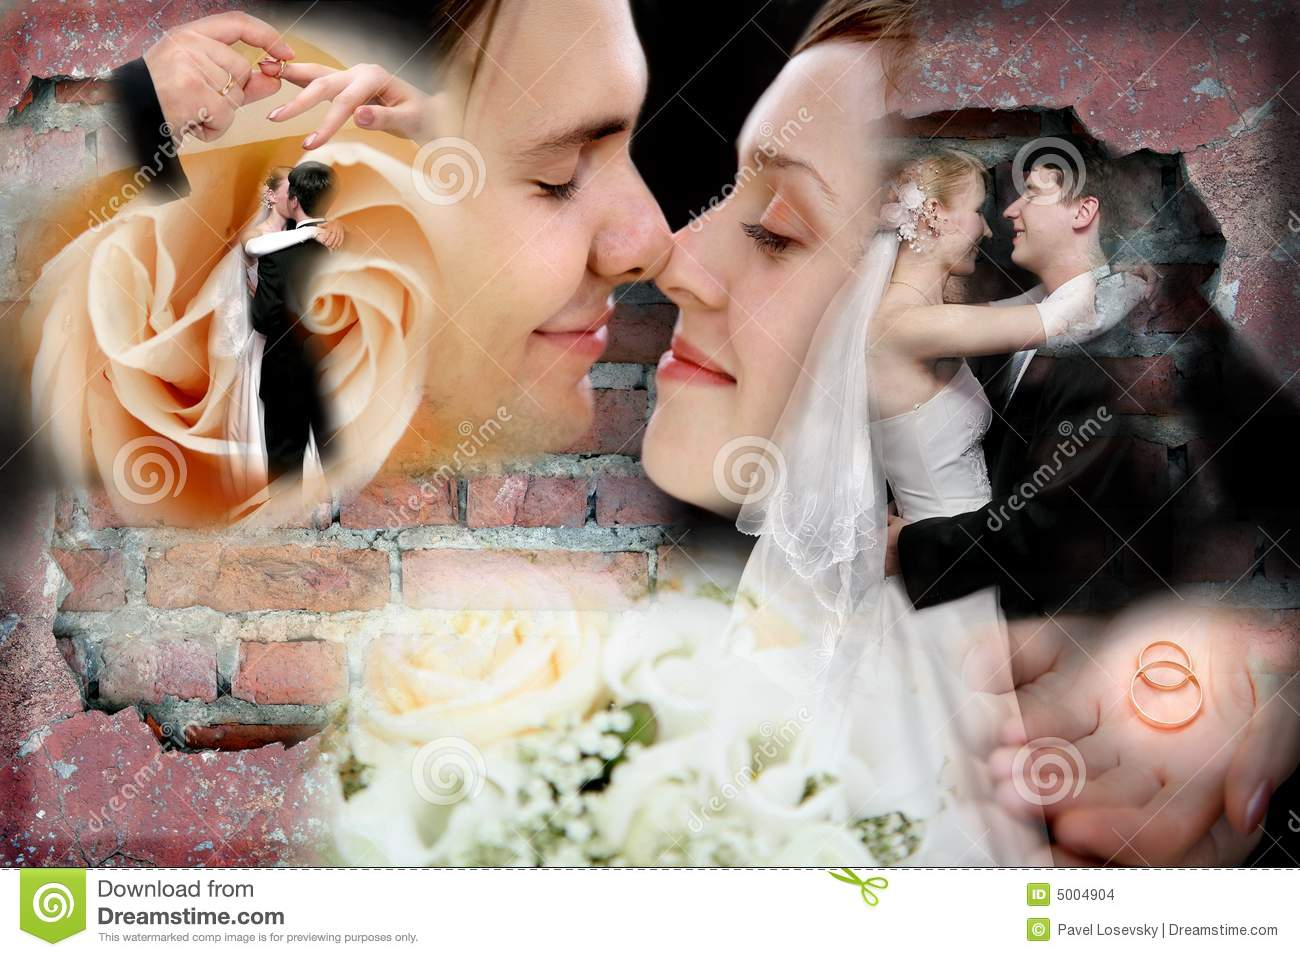 Wedding Collage Stock Images - Image: 5004904